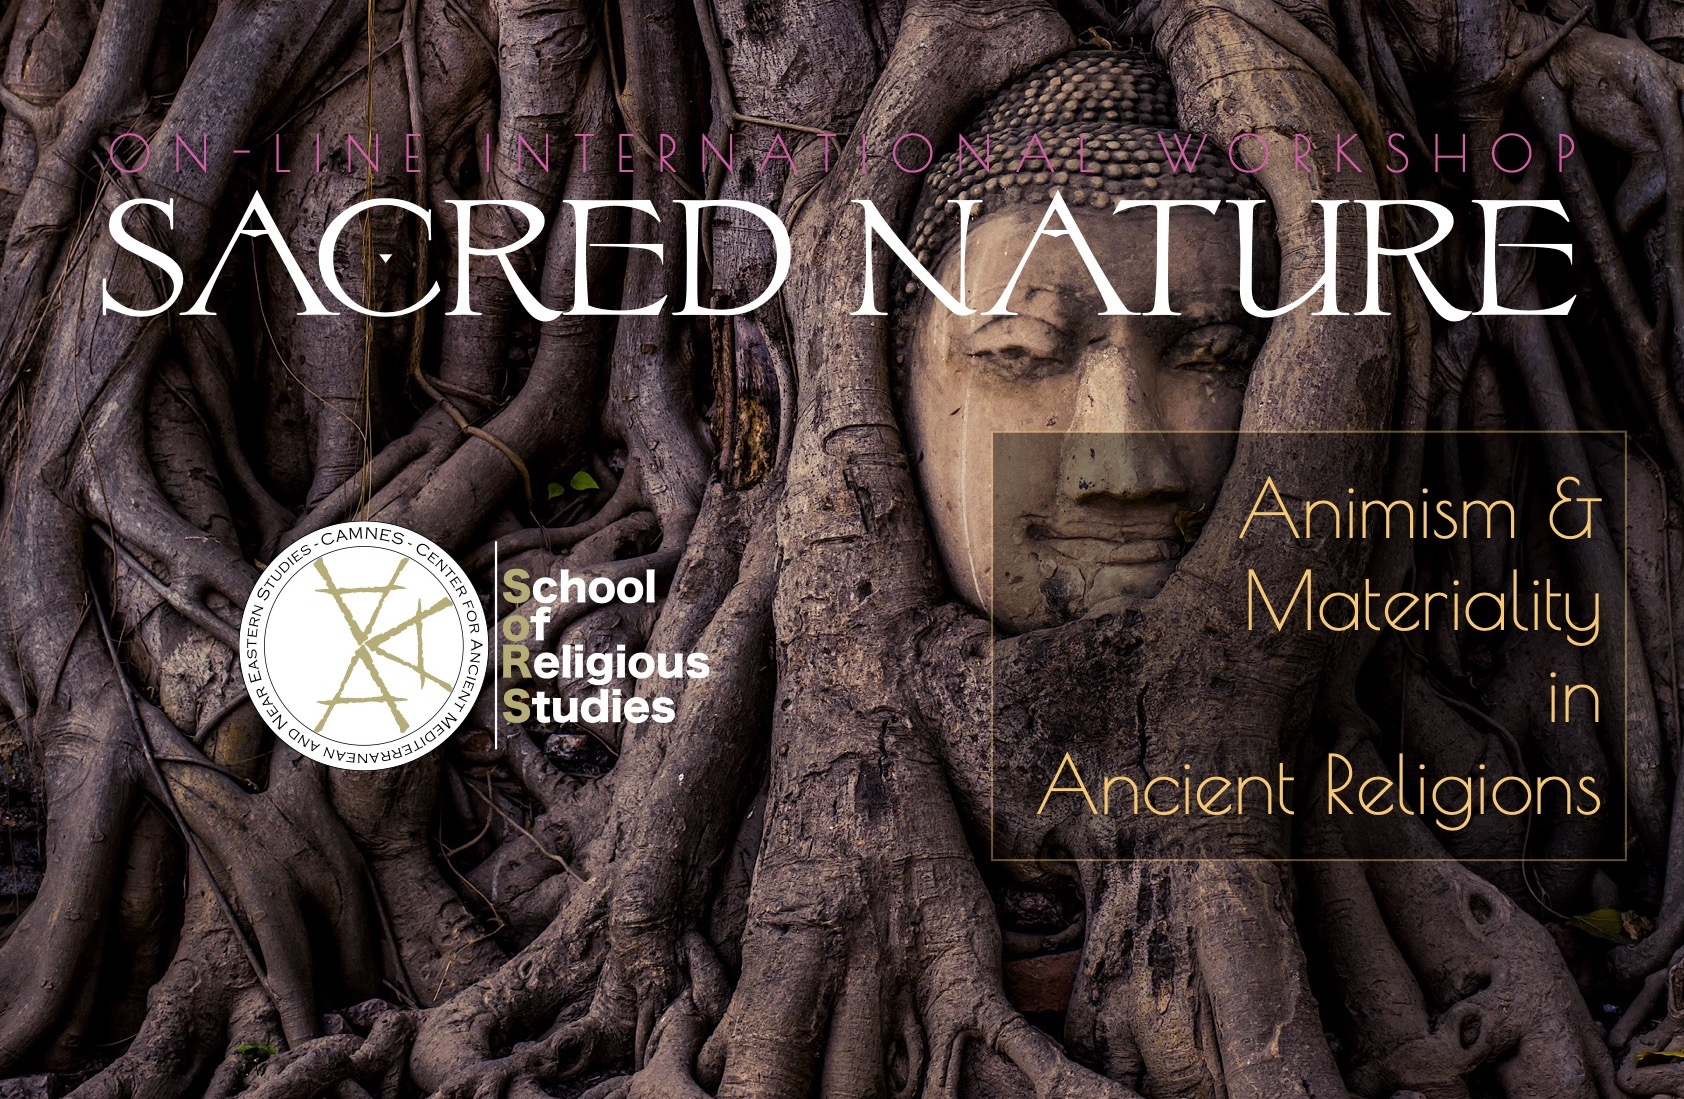 SACRED NATURE: Animism and Materiality in Ancient Religions